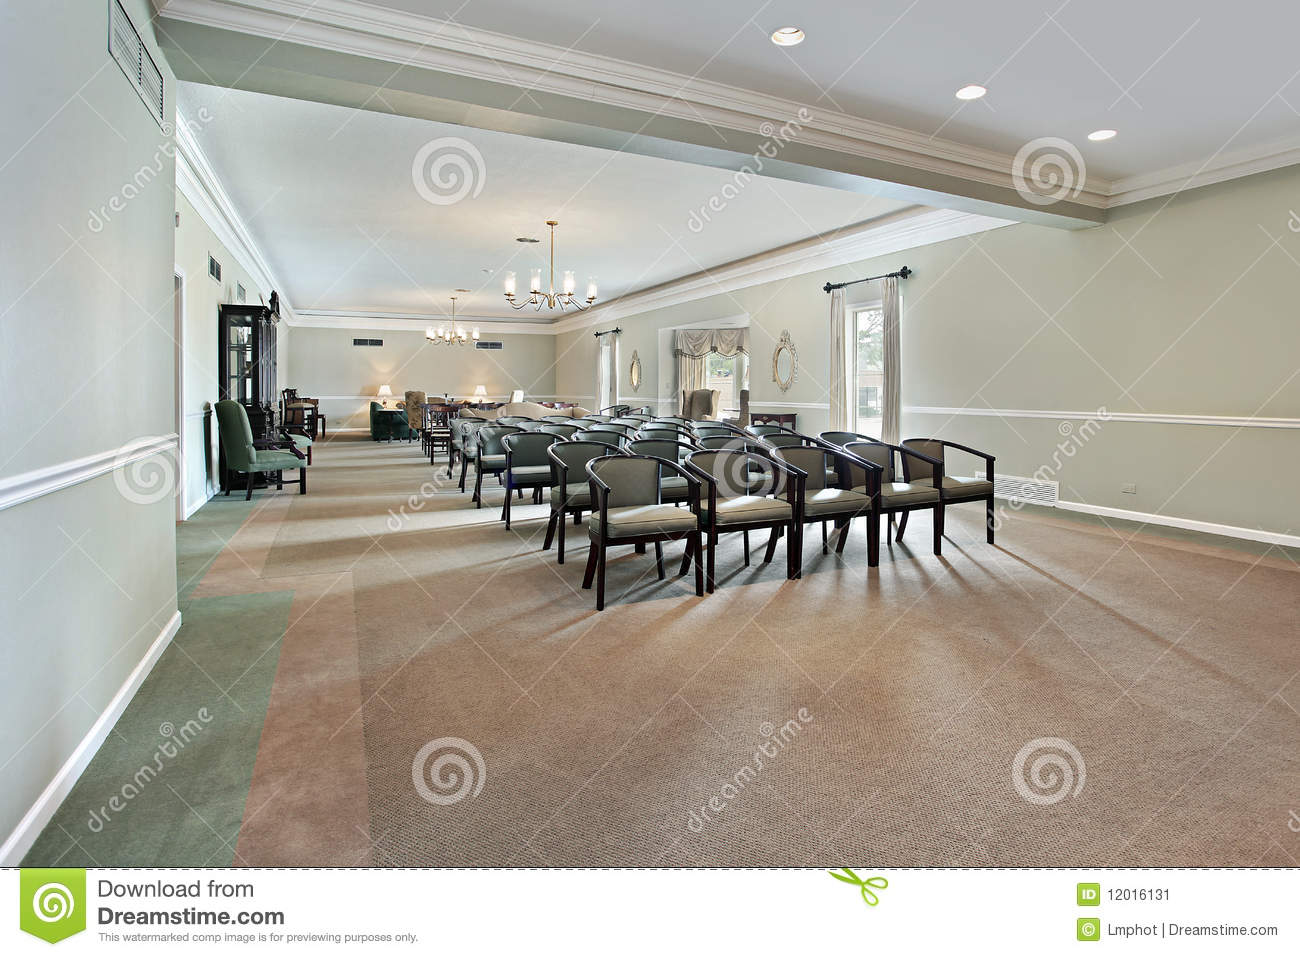 Funeral Home With Couches And Chairs Royalty Free Stock Photo CartoonDealer